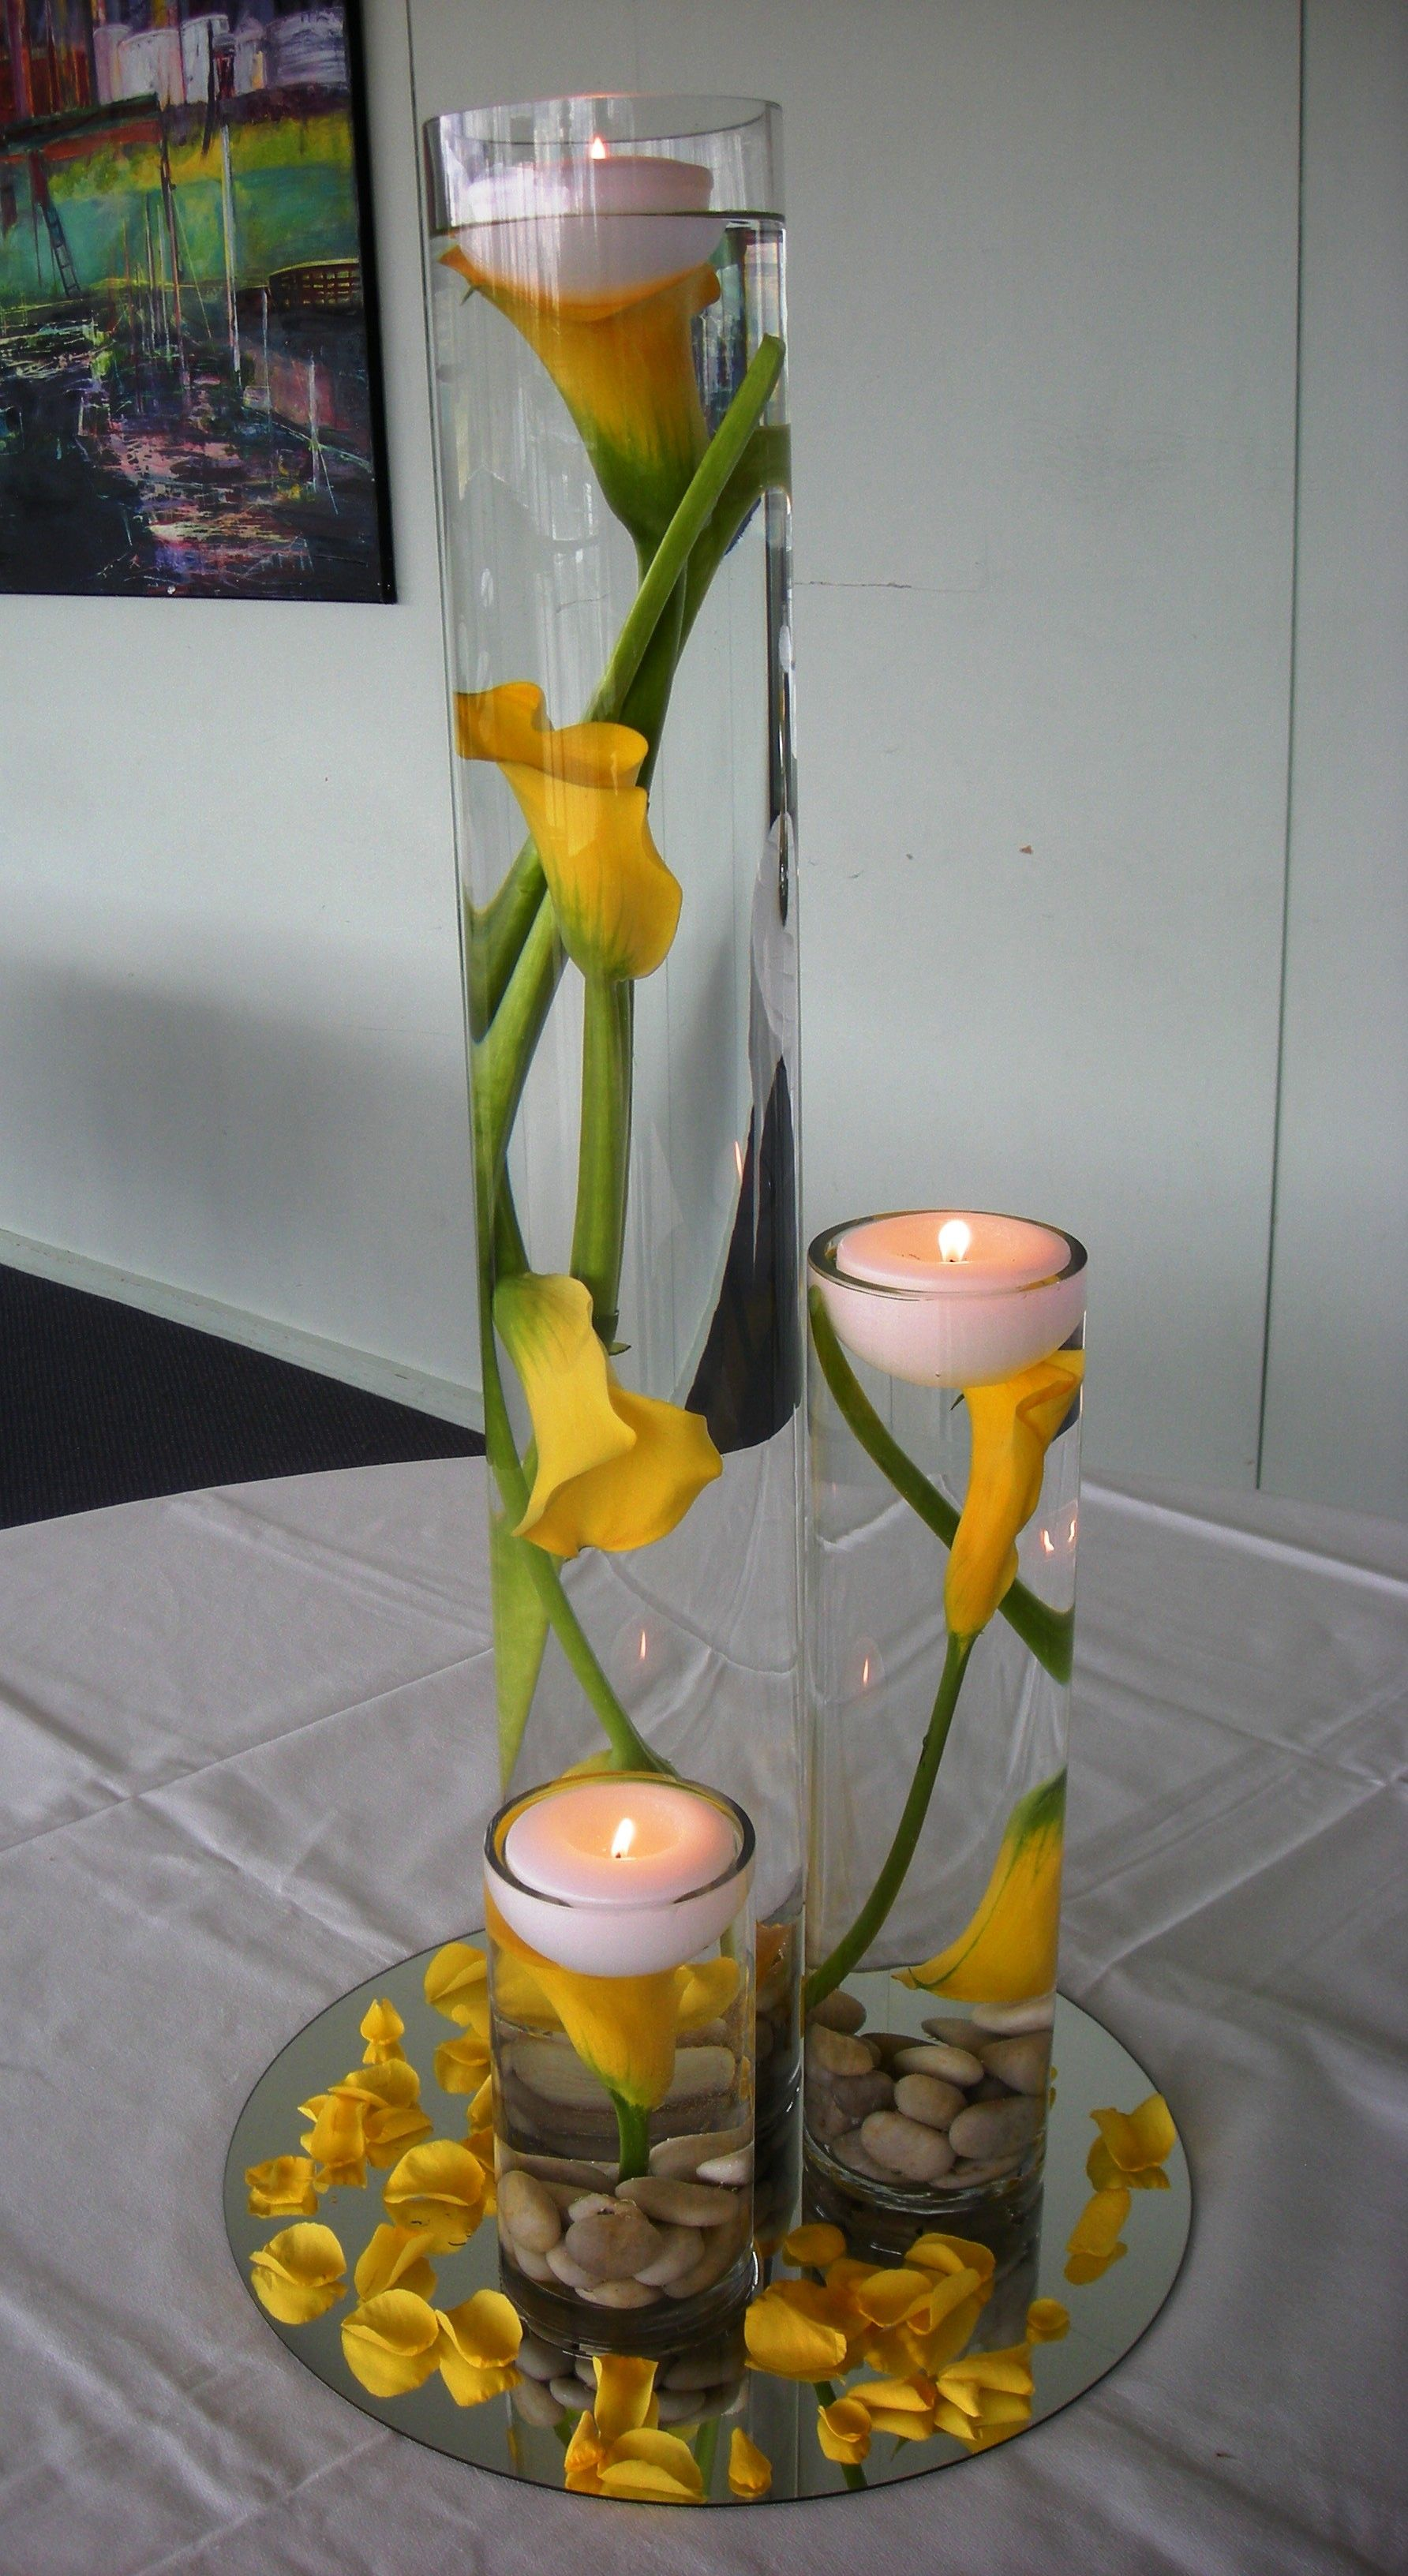 Stunning Yellow Calla Lily Center Pieces I would add white rocks